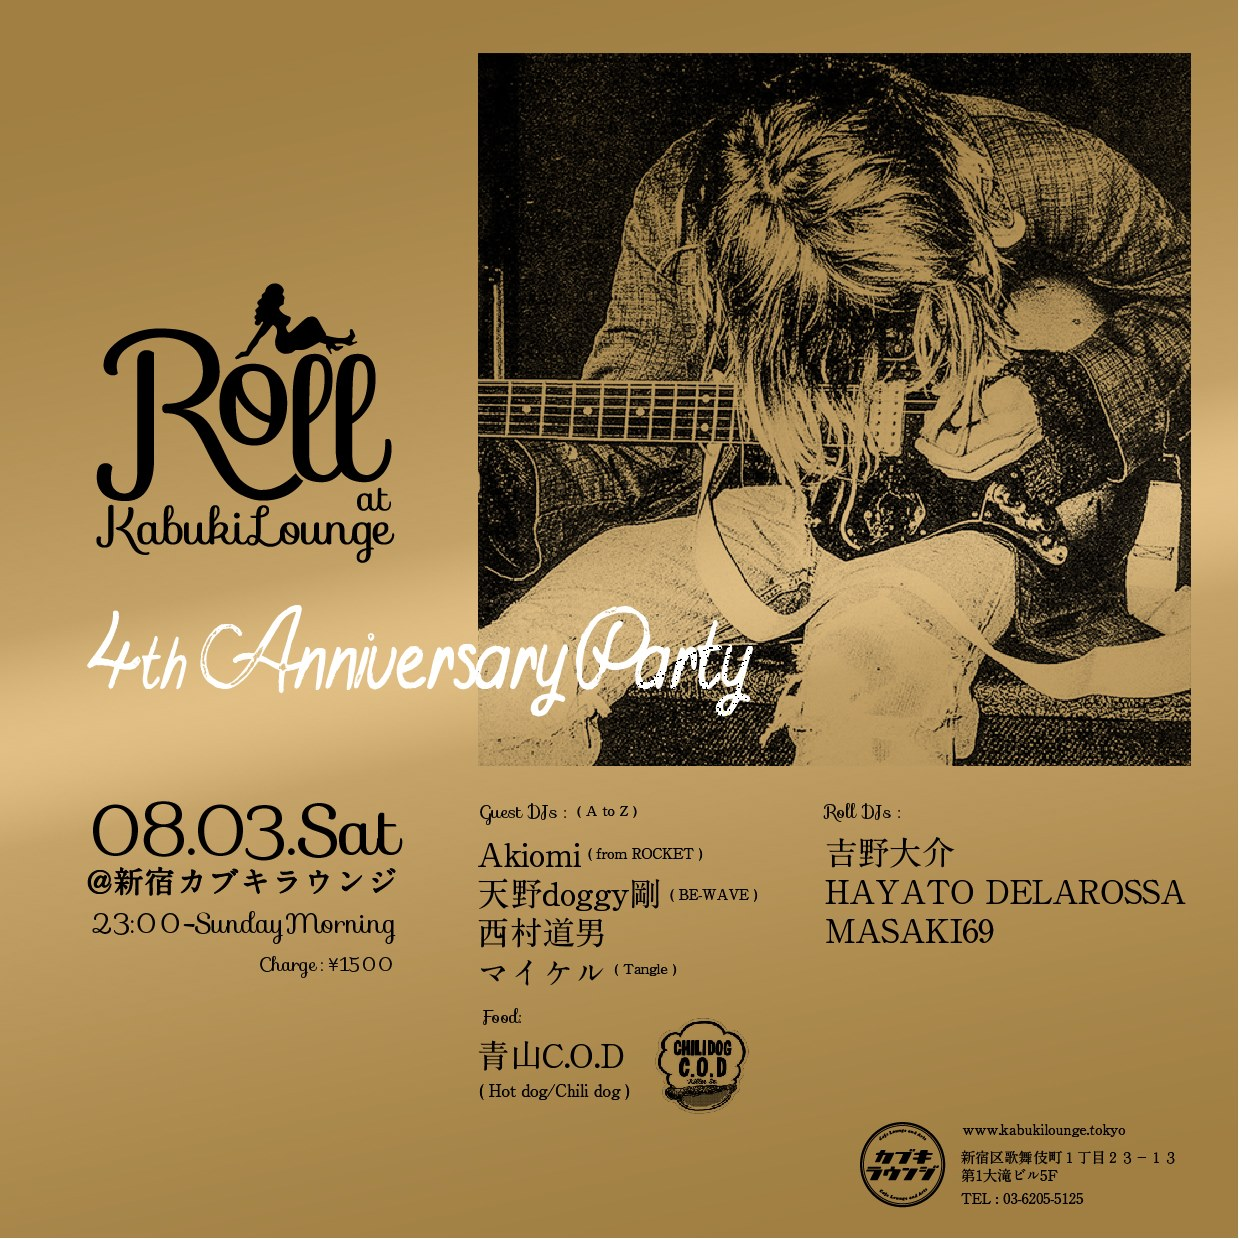 Roll 4th AnniversaryParty08.03.sat カブキラウンジ